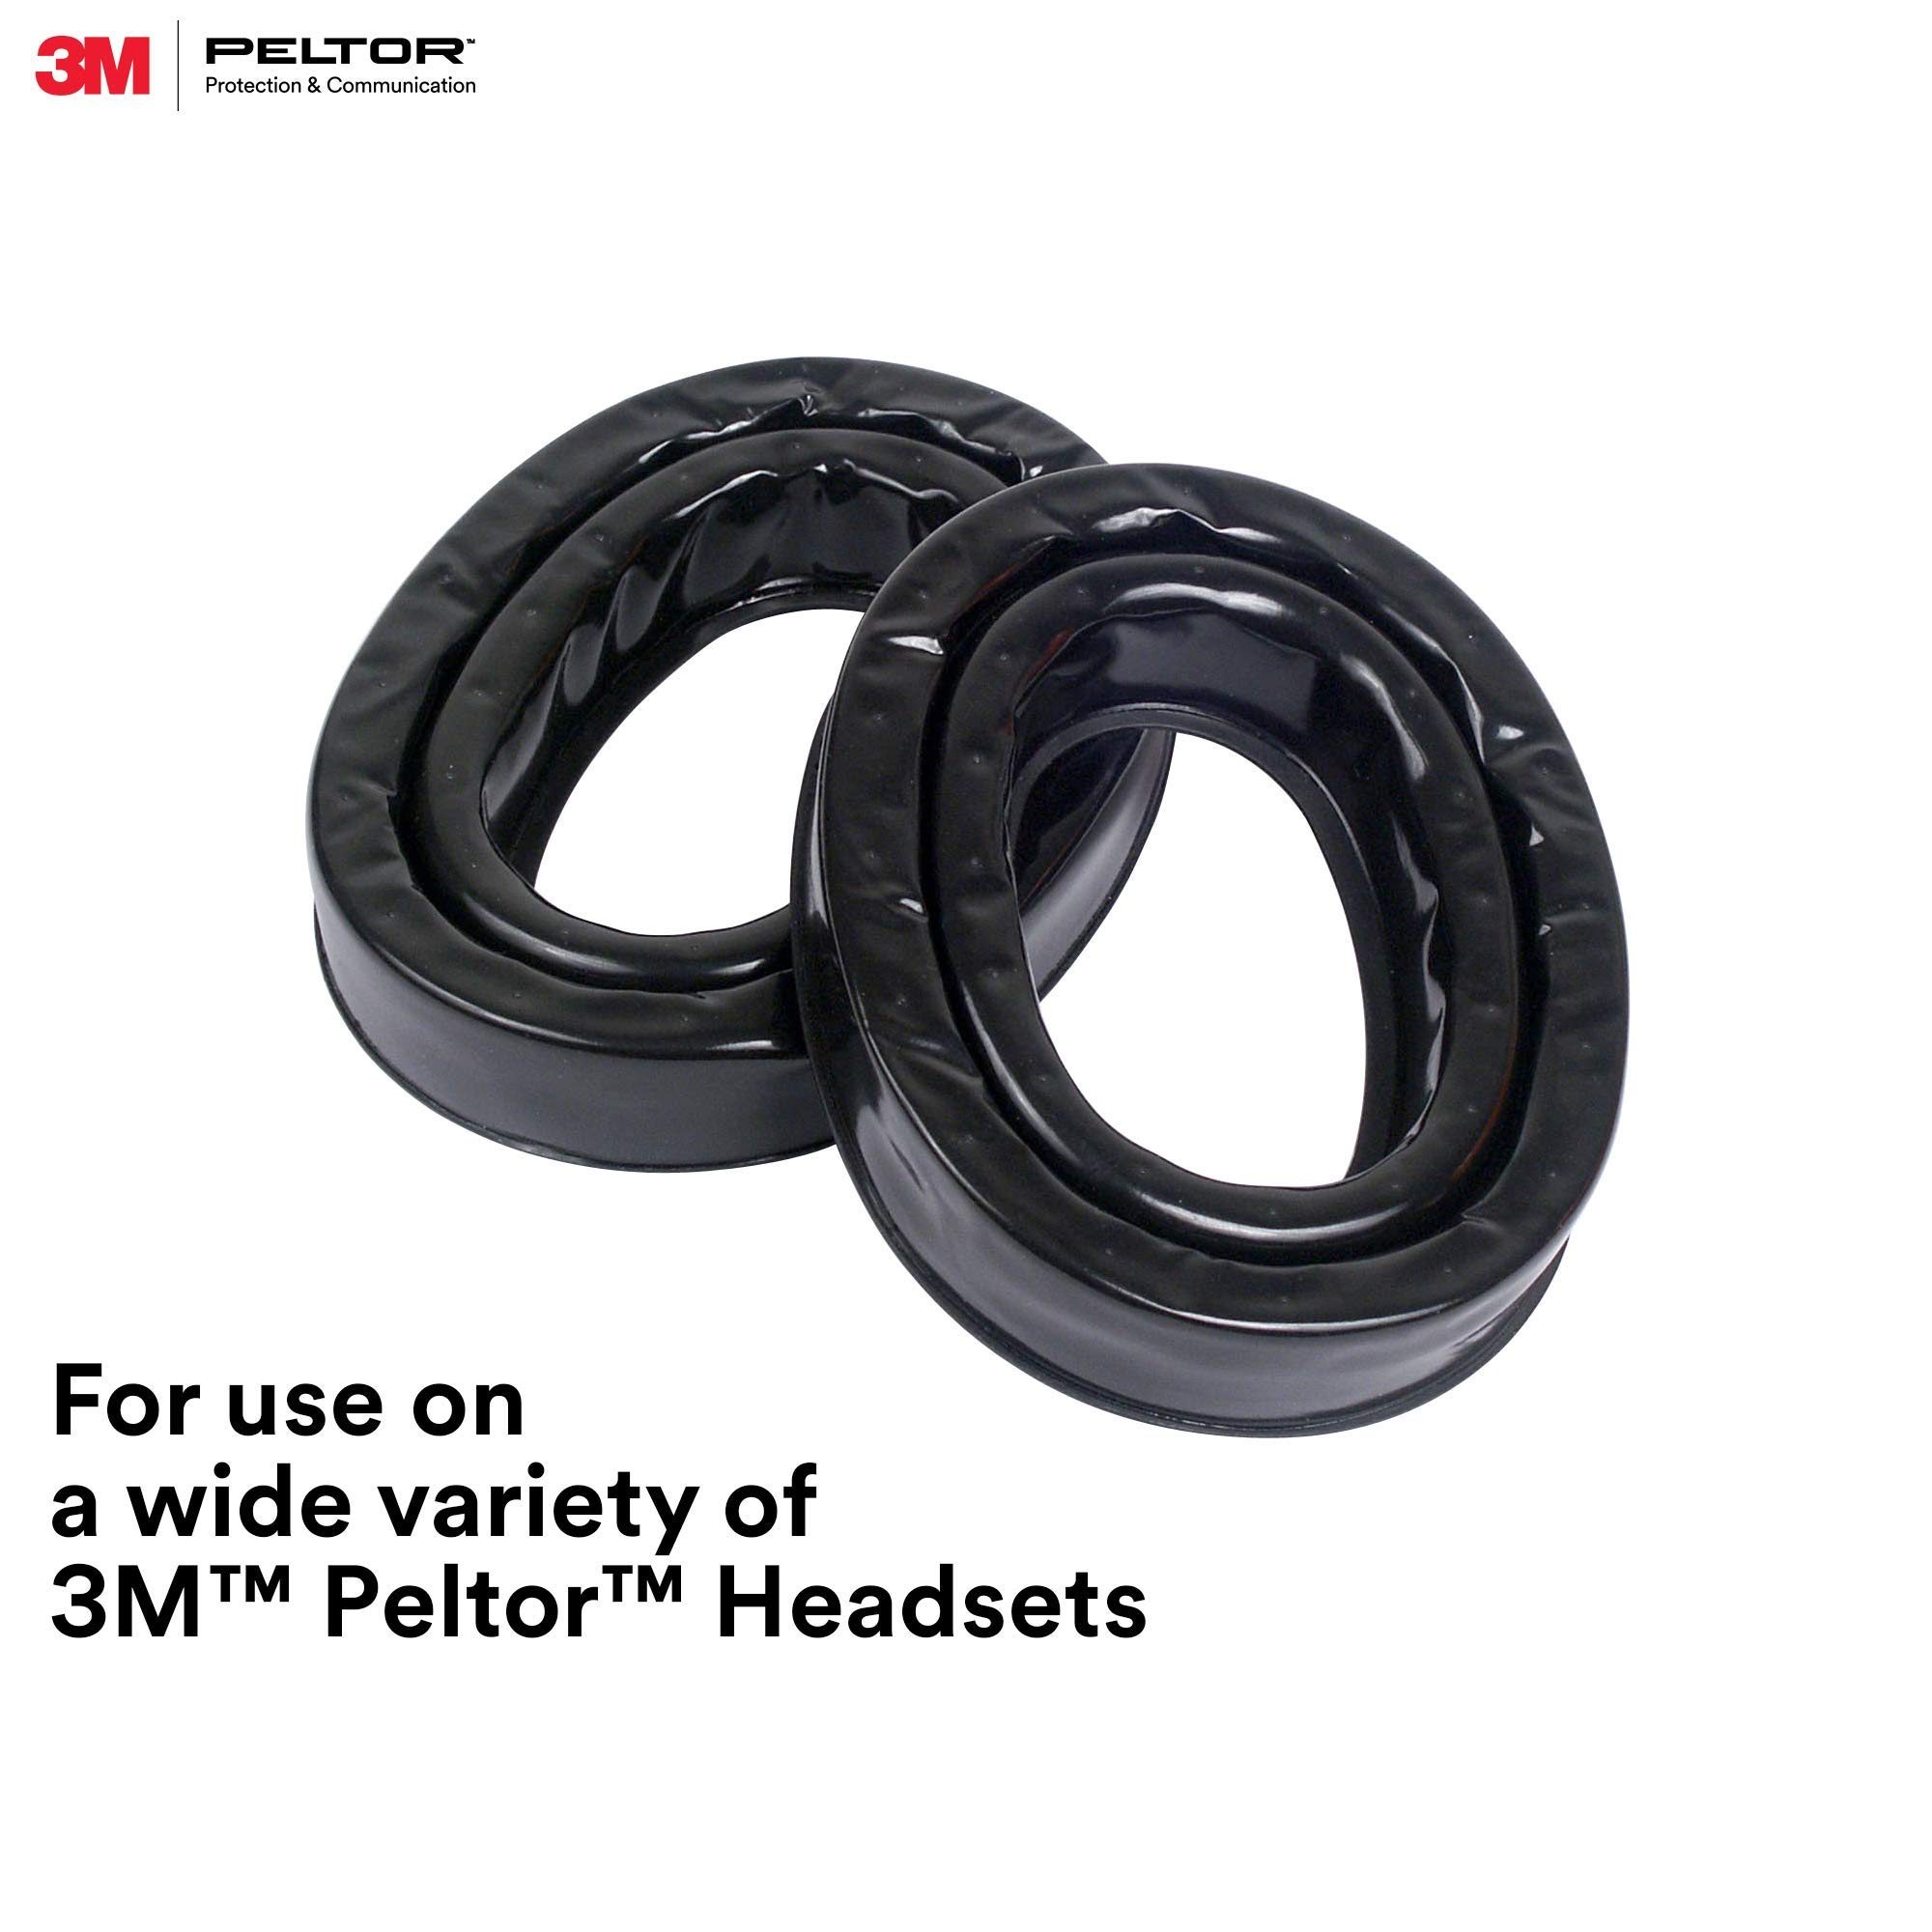 3M Personal Protective Equipment PELTOR Camelback Gel Sealing Rings HY80, Comfort Replacement Earmuff Cushions, Black by 3M Personal Protective Equipment